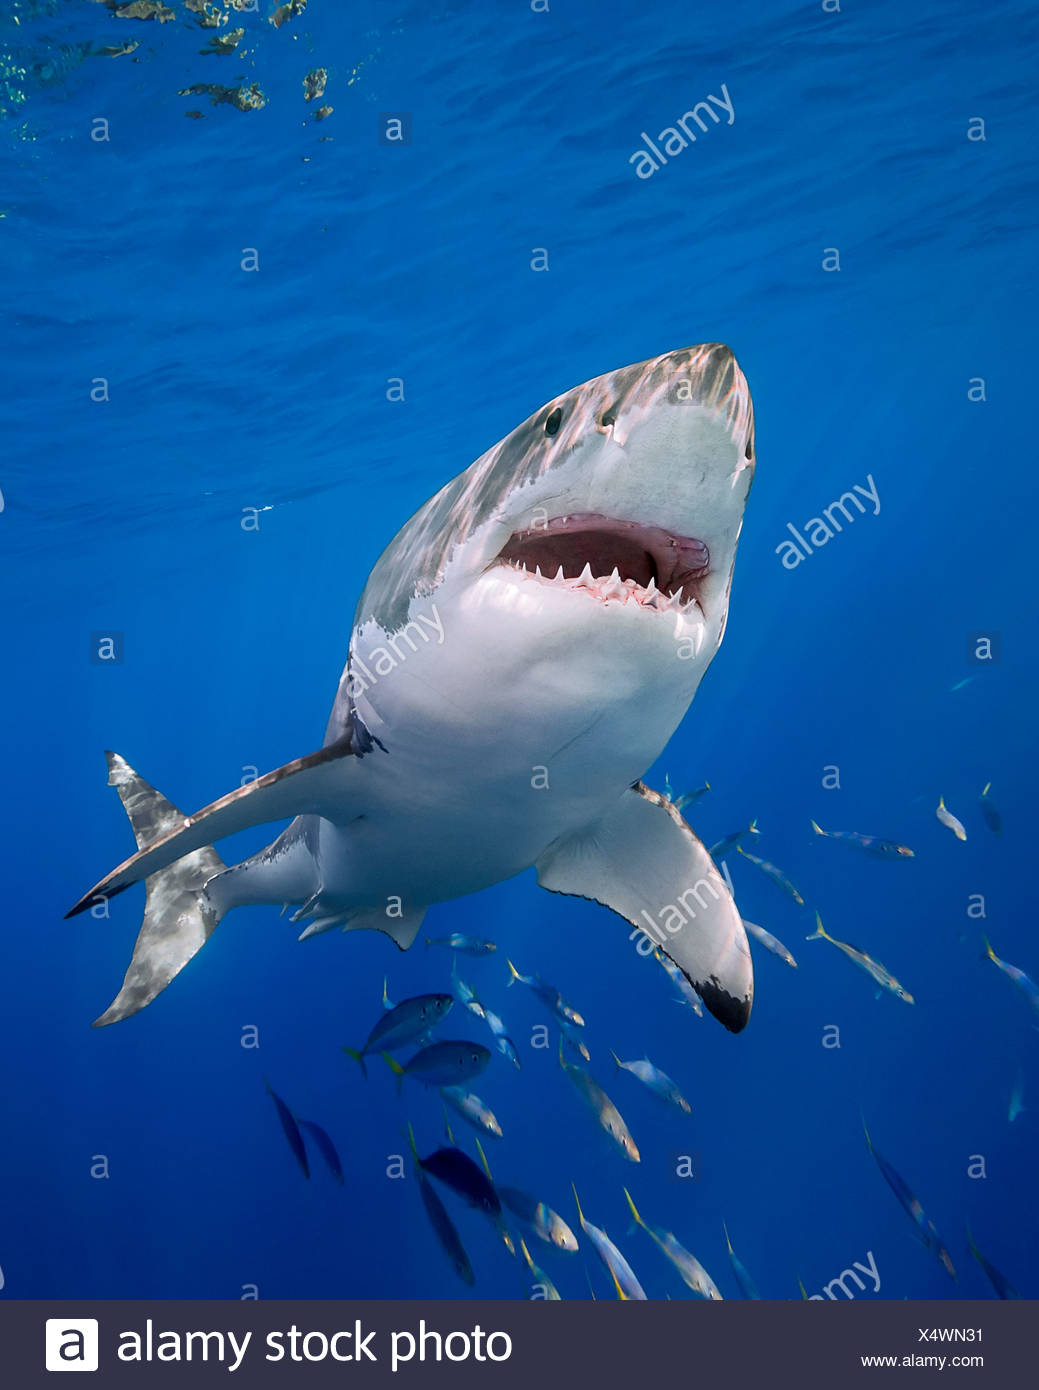 Great White Shark, Carcharodon carcharias, Guadalupe Island, Mexico - Stock Image